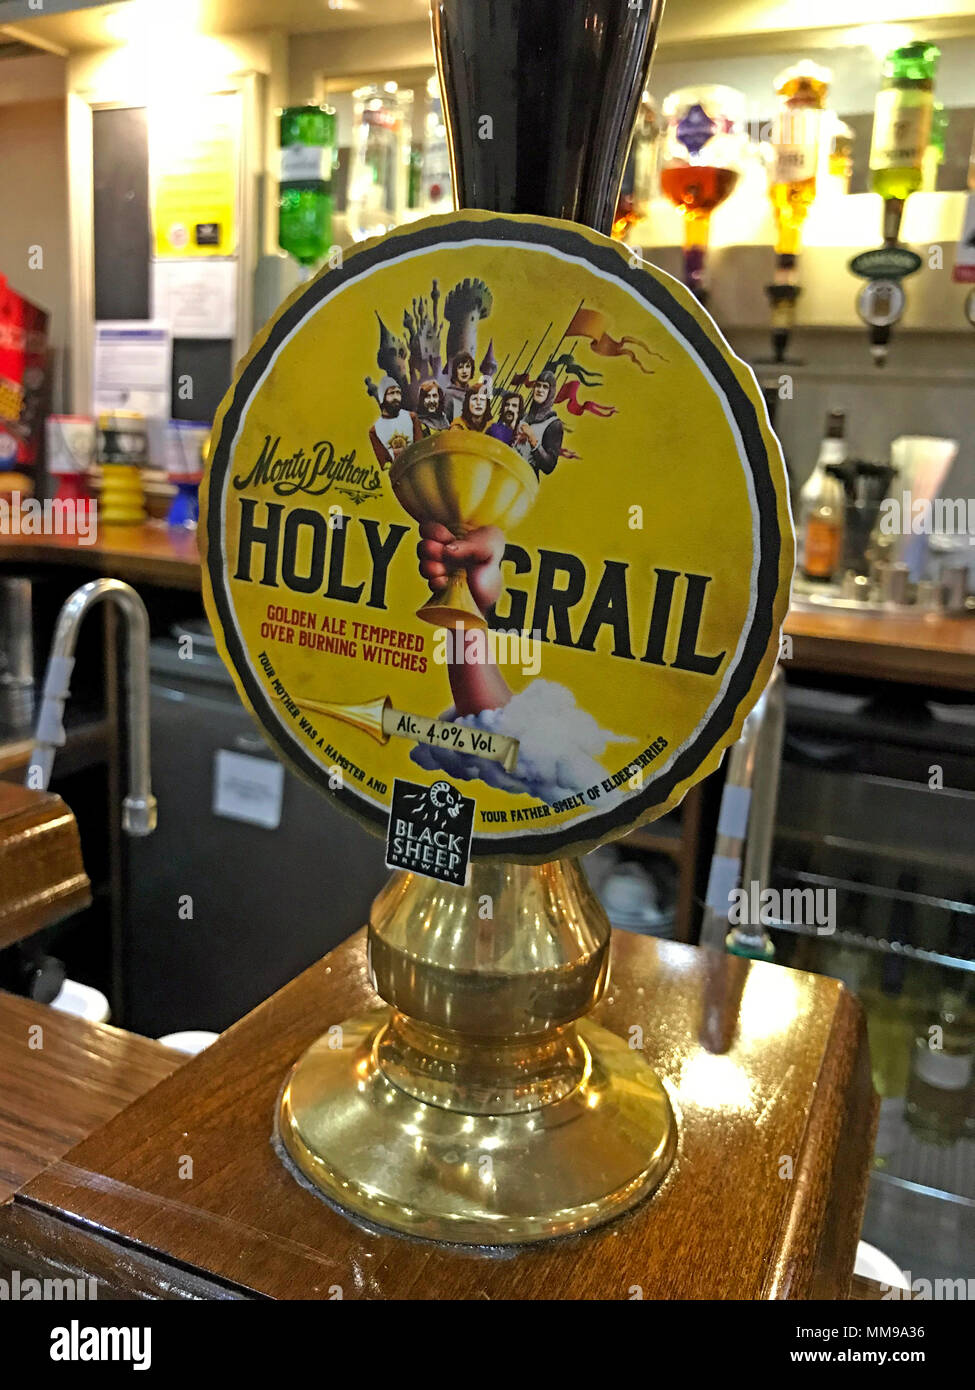 Black Sheep Holy Grail bitter beer CAMRA, pump on a bar, England - Stock Image